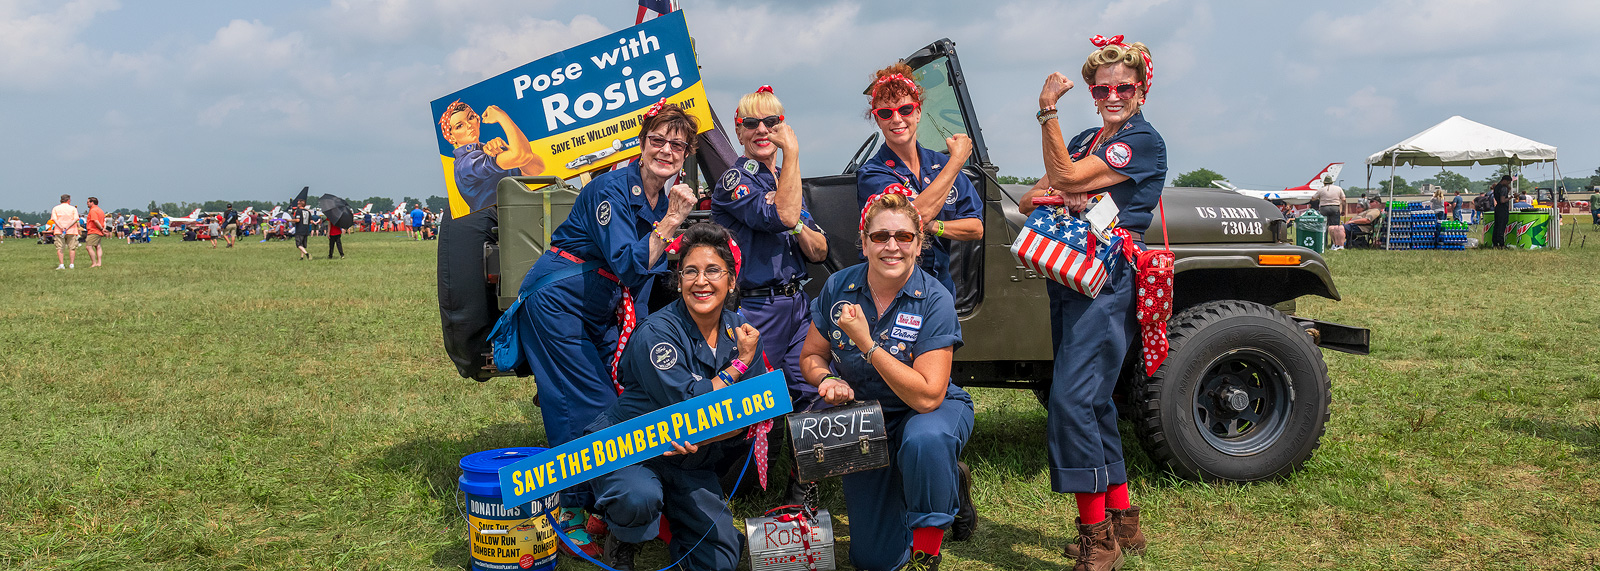 Willow Run Rosies at Thunder Over Michigan